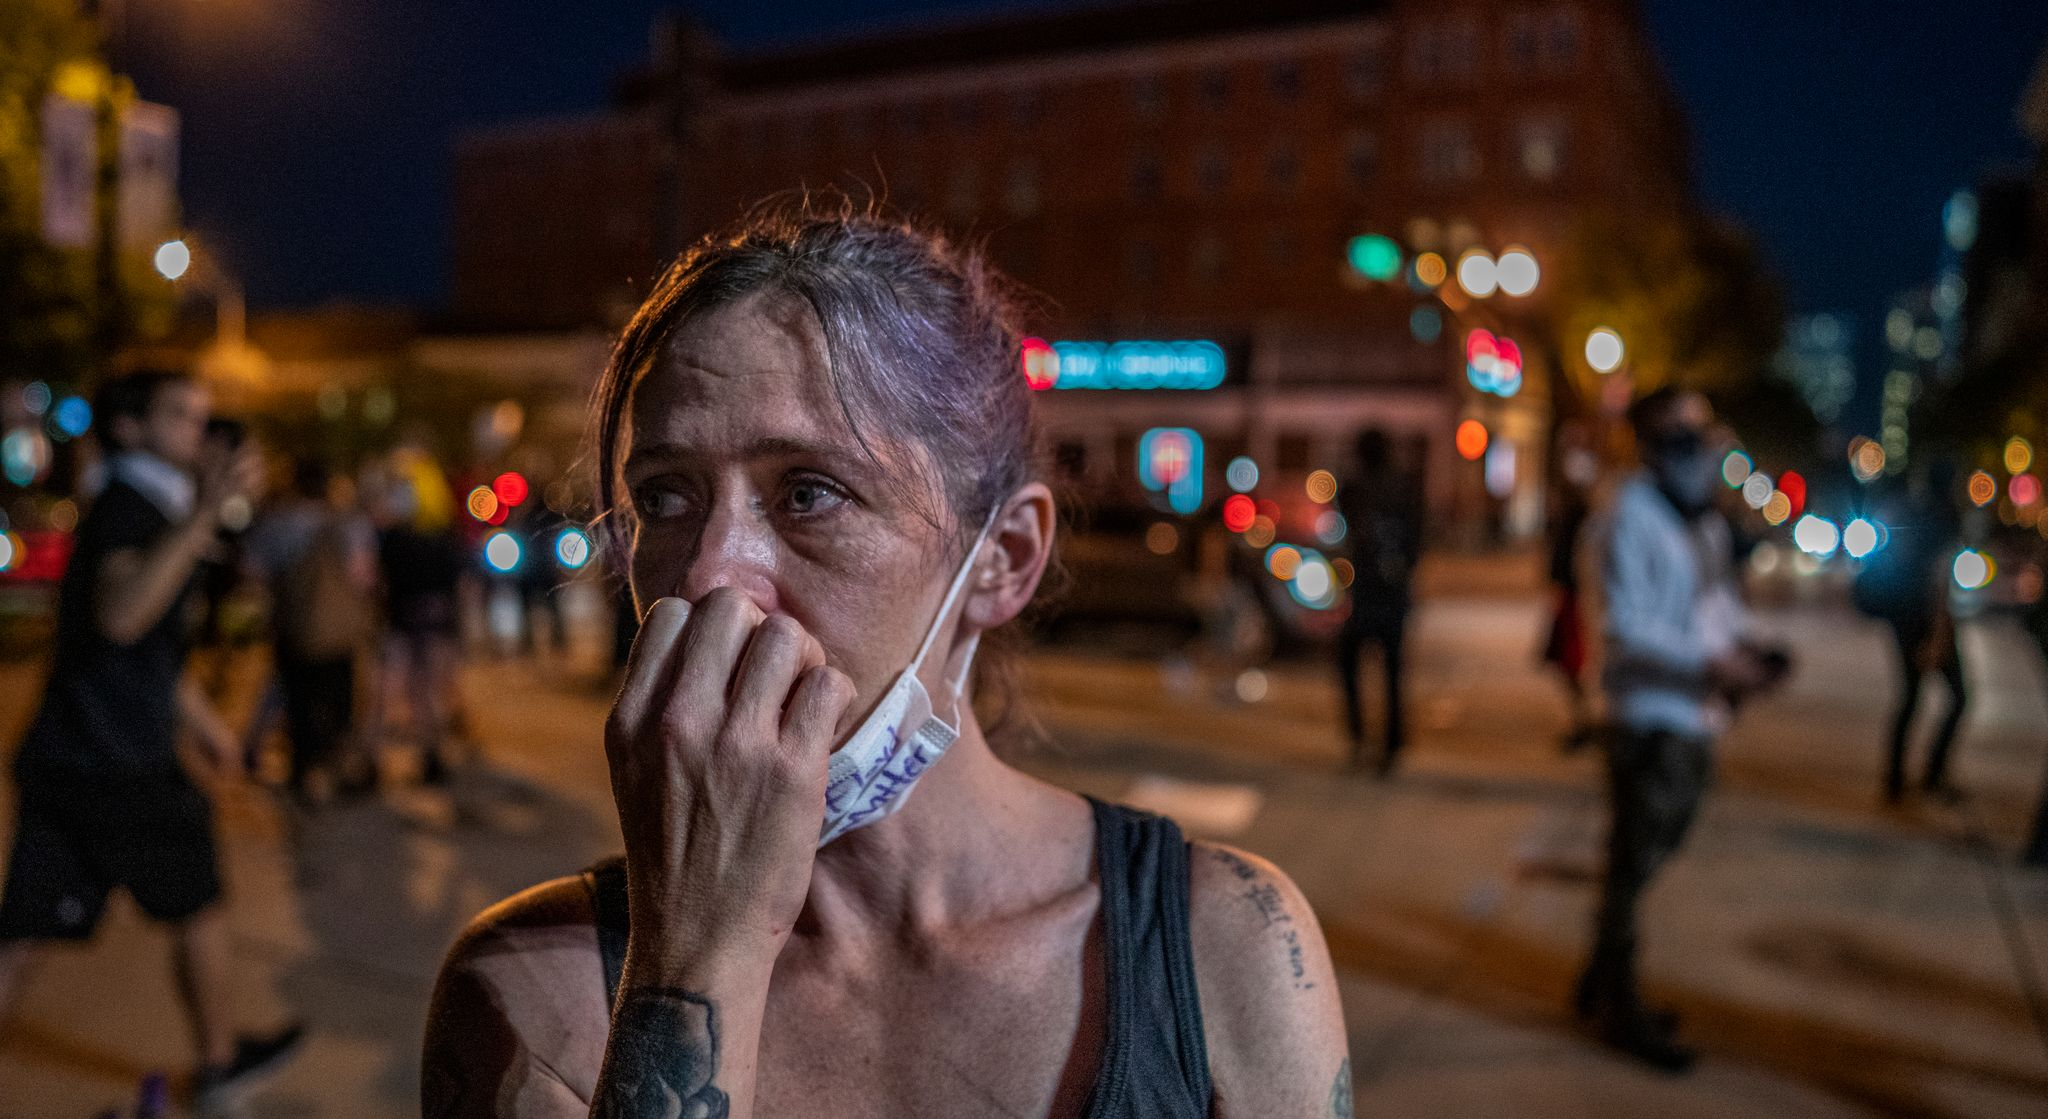 Nashville, Tenn., May 30 - A woman clutches her face in the aftermath of riots in downtown Nashville Saturday. (Photo: John Partipilo)